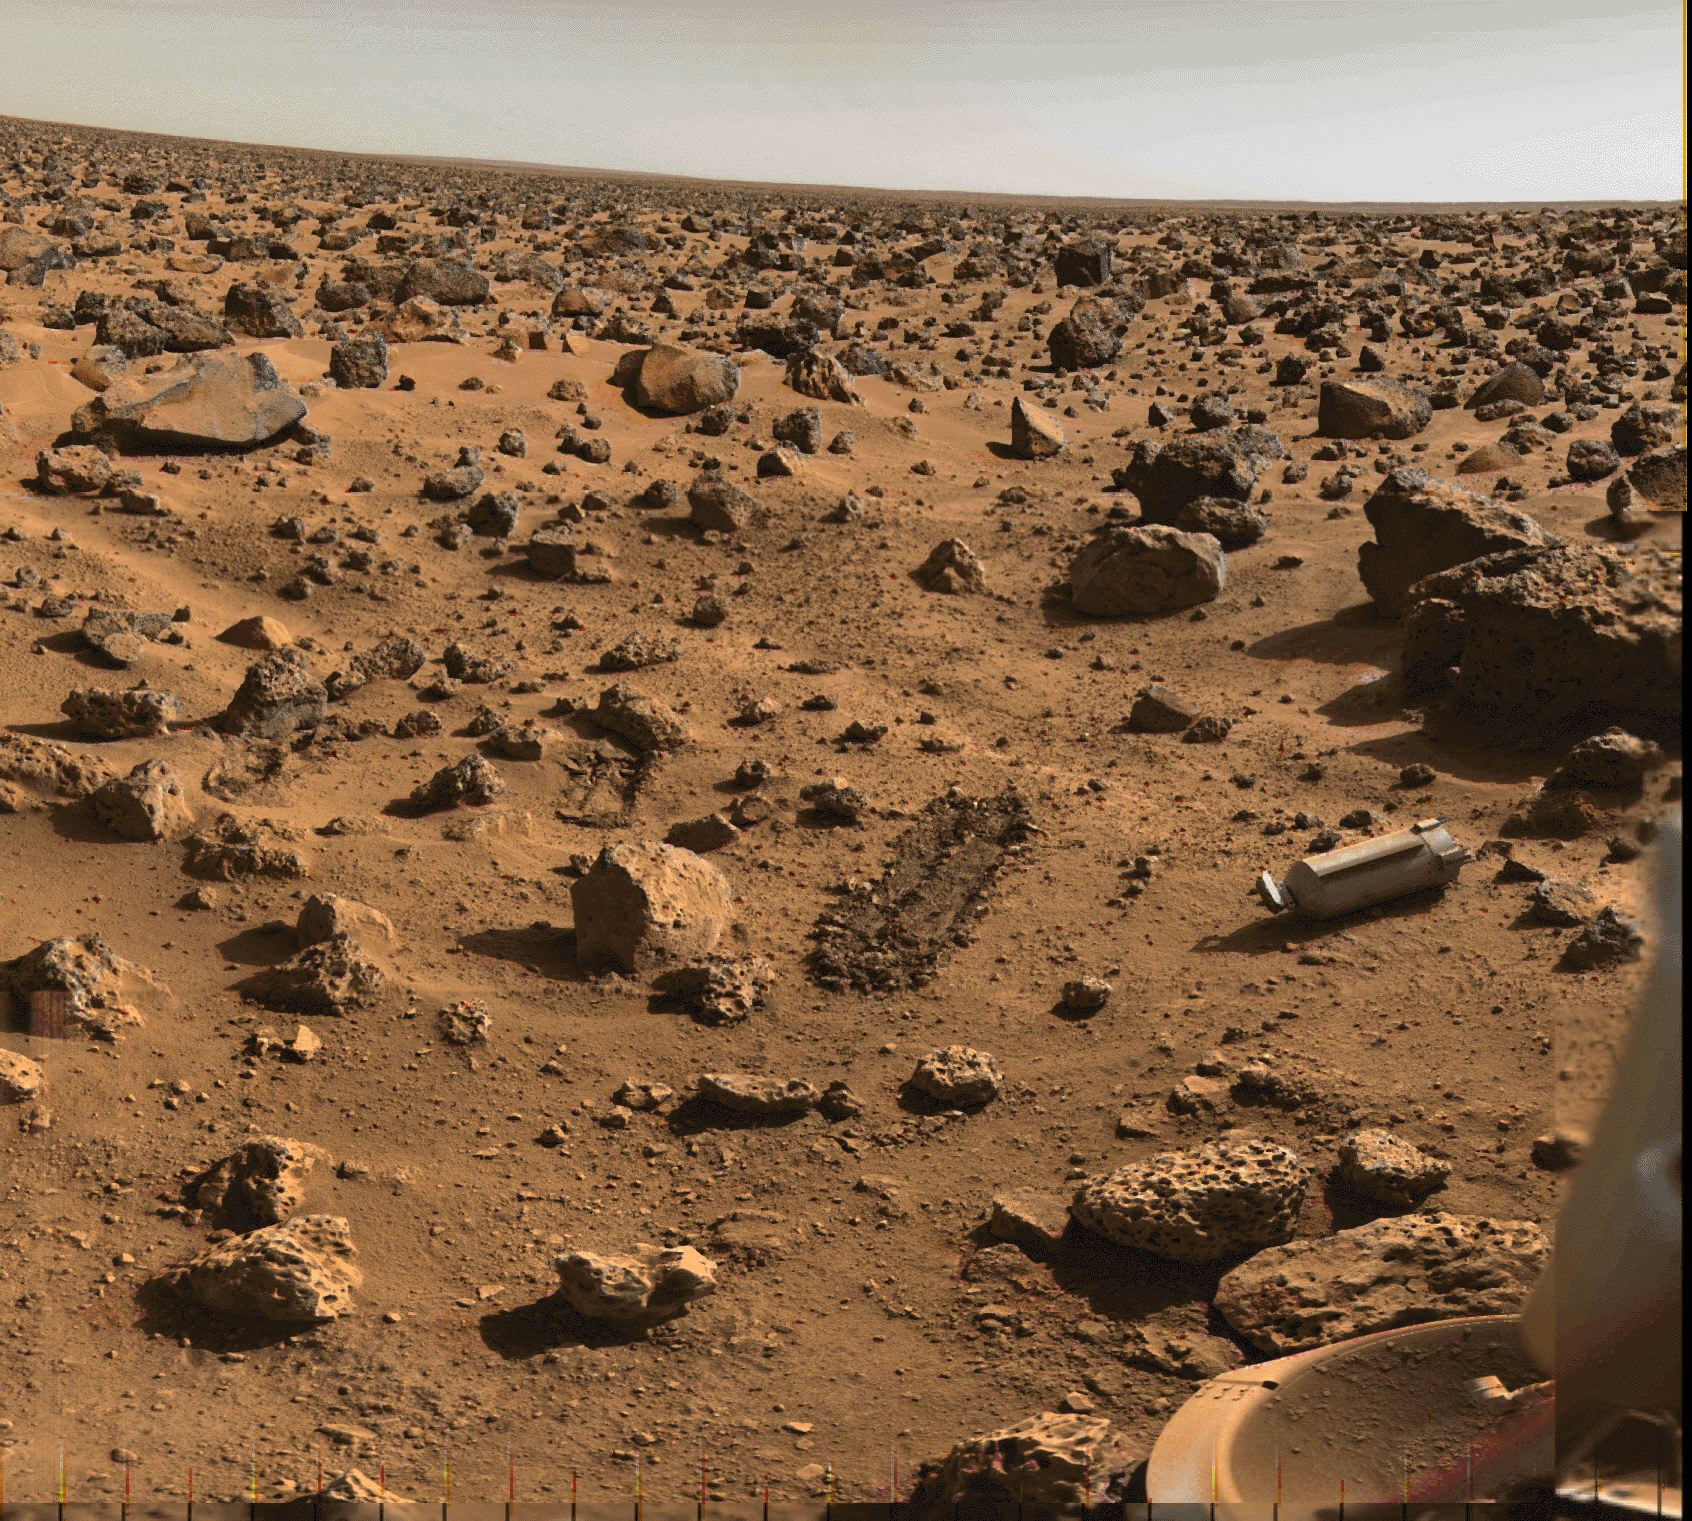 APOD: July 22, 1996 - Utopia on Mars